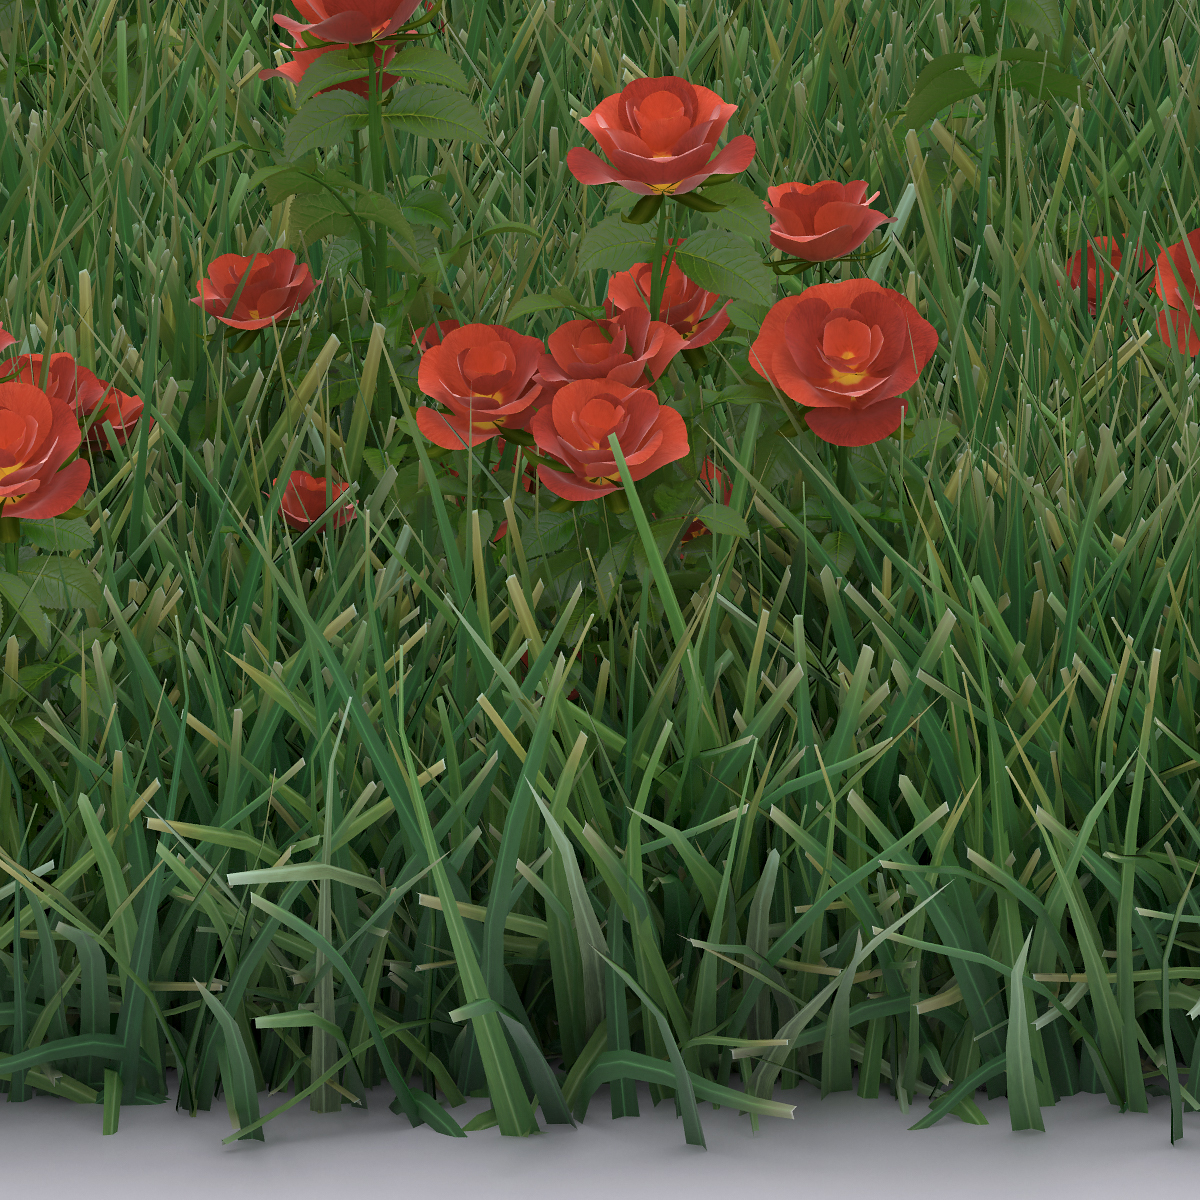 Detail Virtual Flowers and Grass 003b - 2018 - Virtual Flowers and Grass